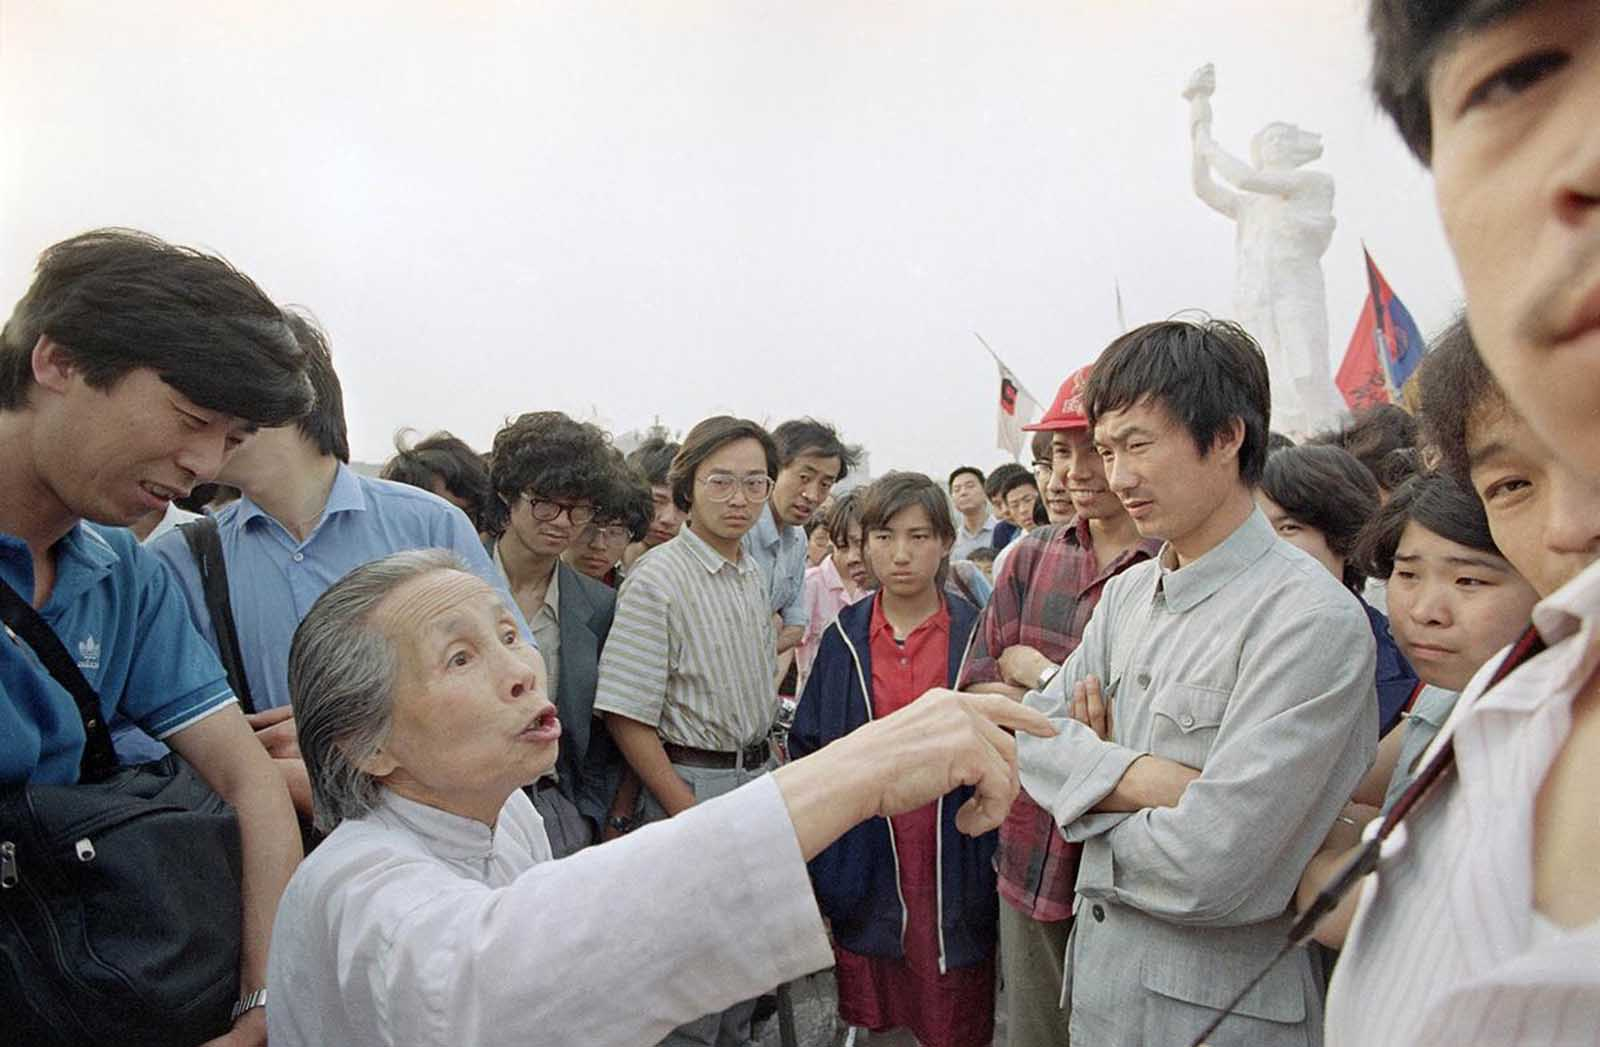 A senior citizen airs her views on democracy in a discussion with striking students, on May 31, 1989 in Tiananmen Square.